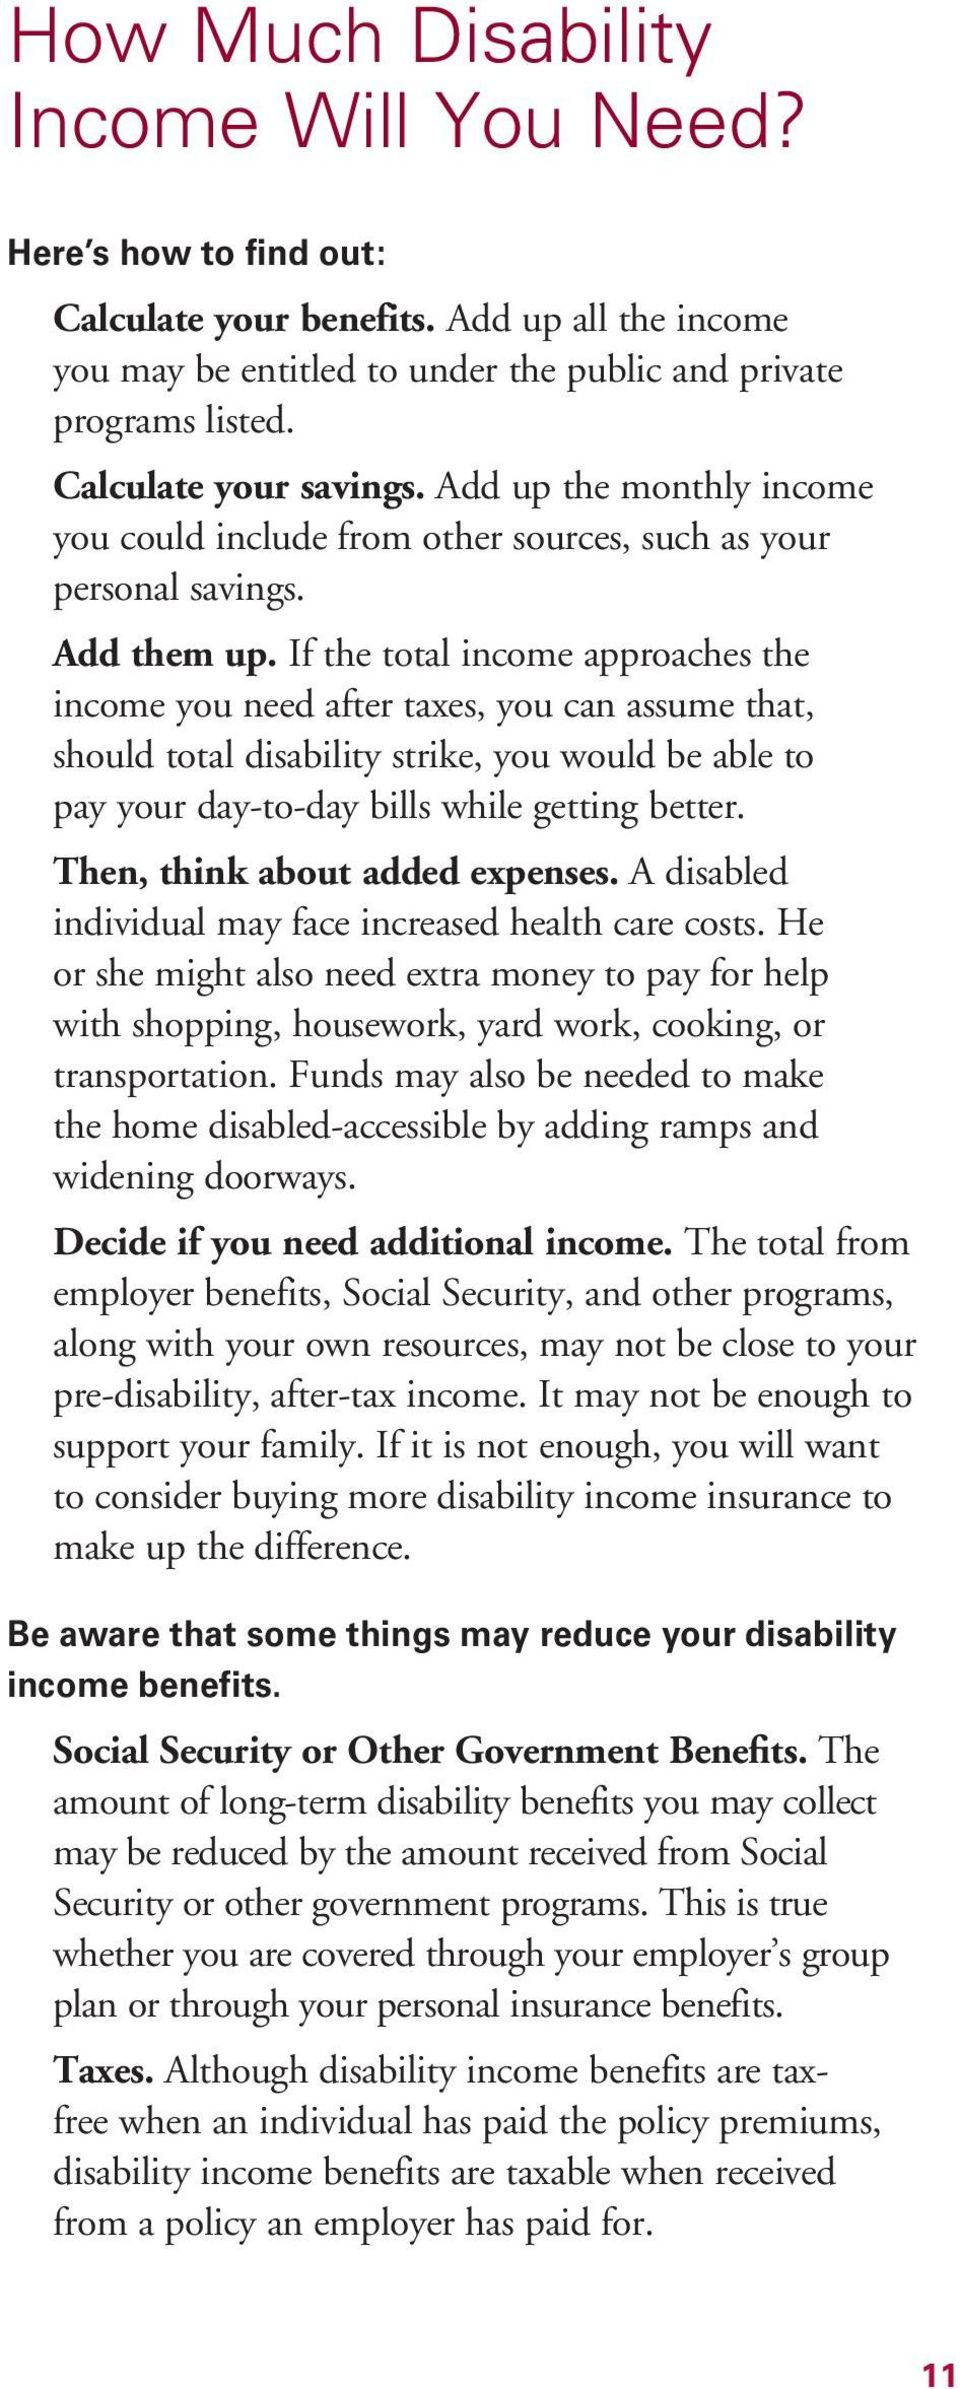 If the total income approaches the income you need after taxes, you can assume that, should total disability strike, you would be able to pay your day-to-day bills while getting better.